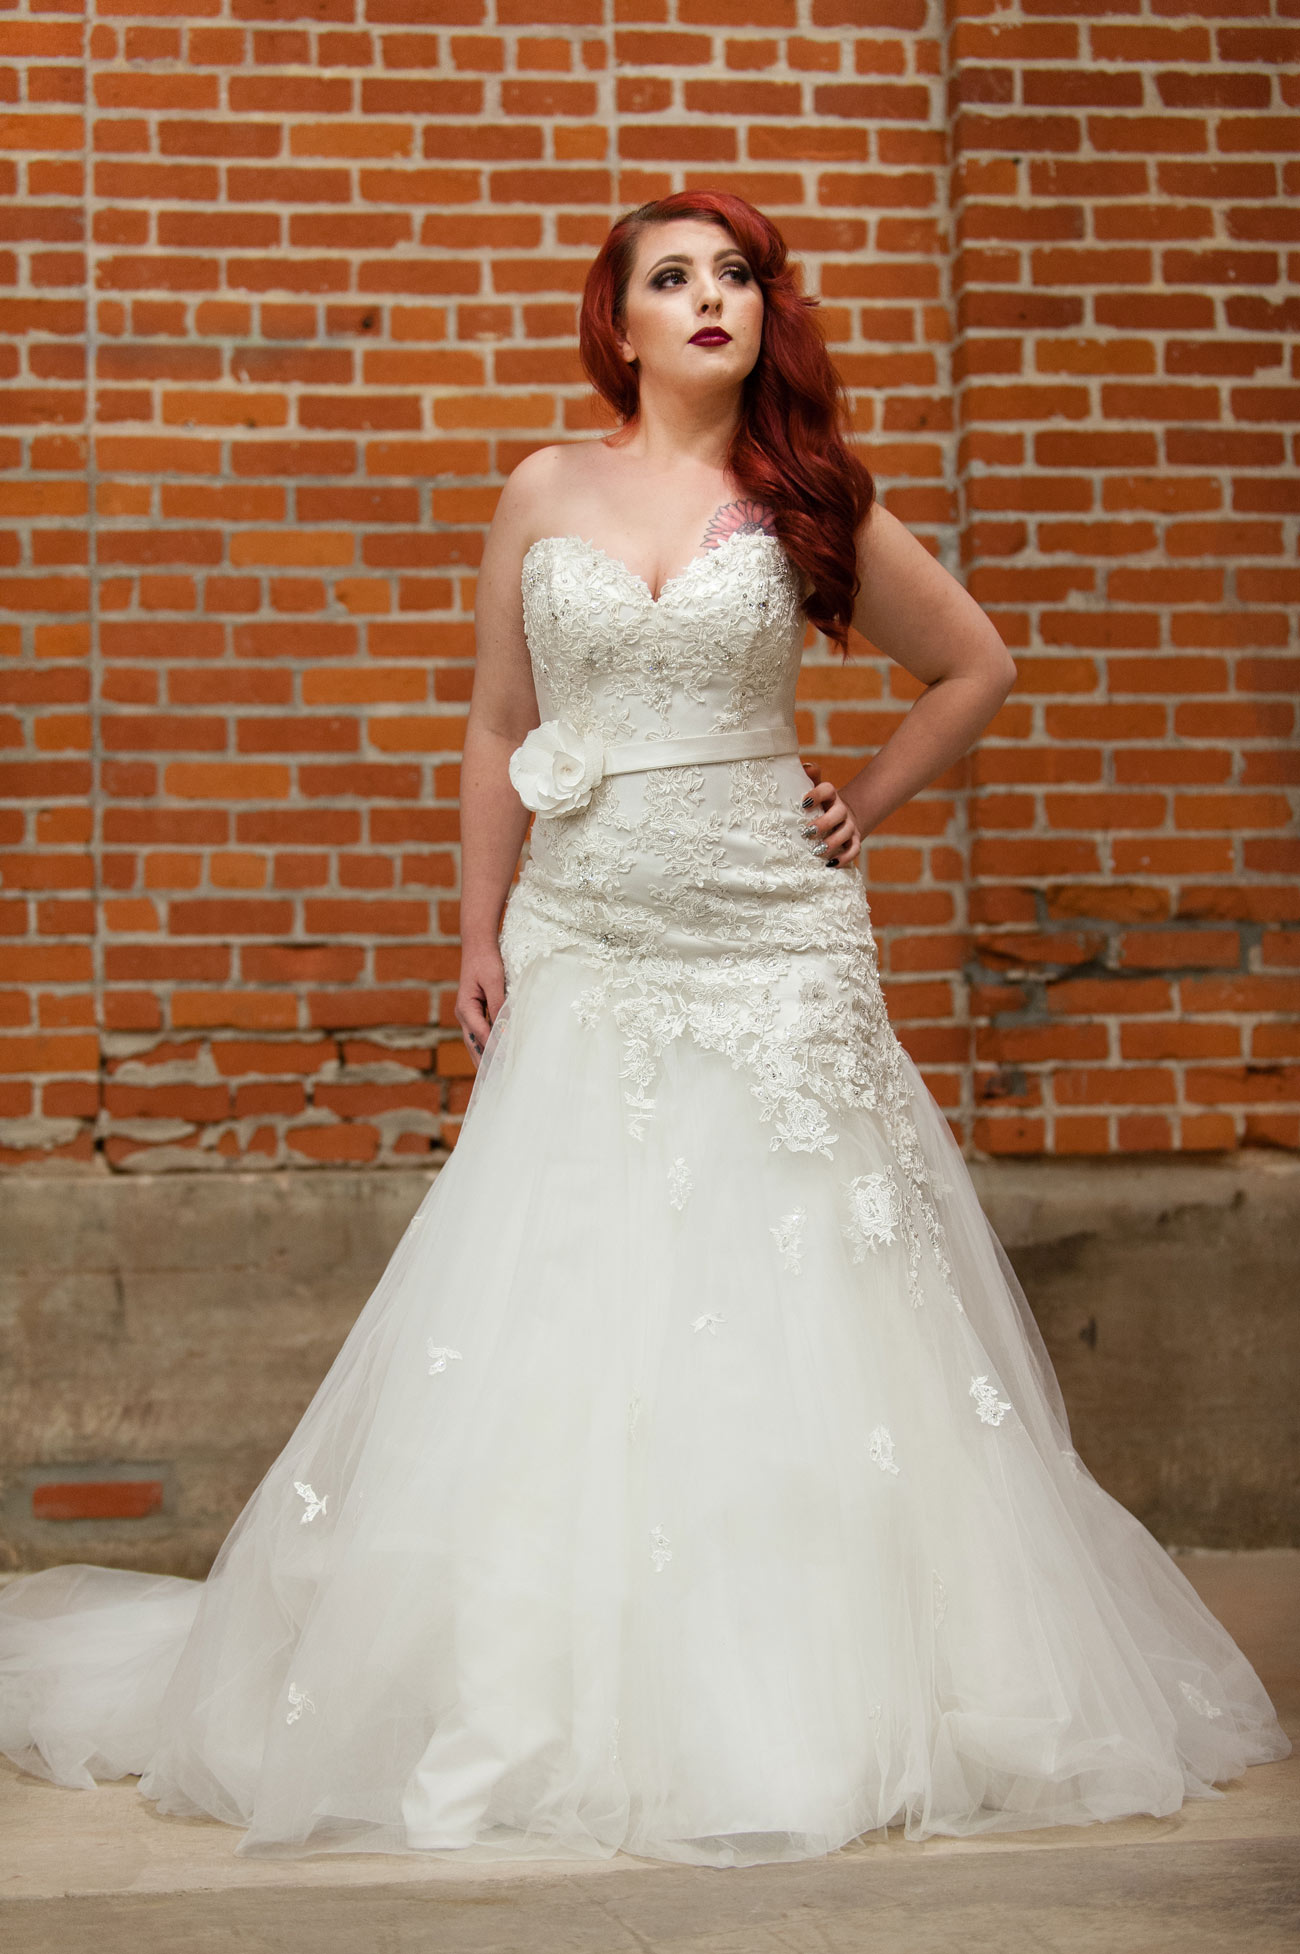 This Gown Is Jillian By Sophia Tolli. A Strapless Lace And Tulle, Fit And  Flare Gown With Exquisite Hand Placed Lace Covering The Bodice.